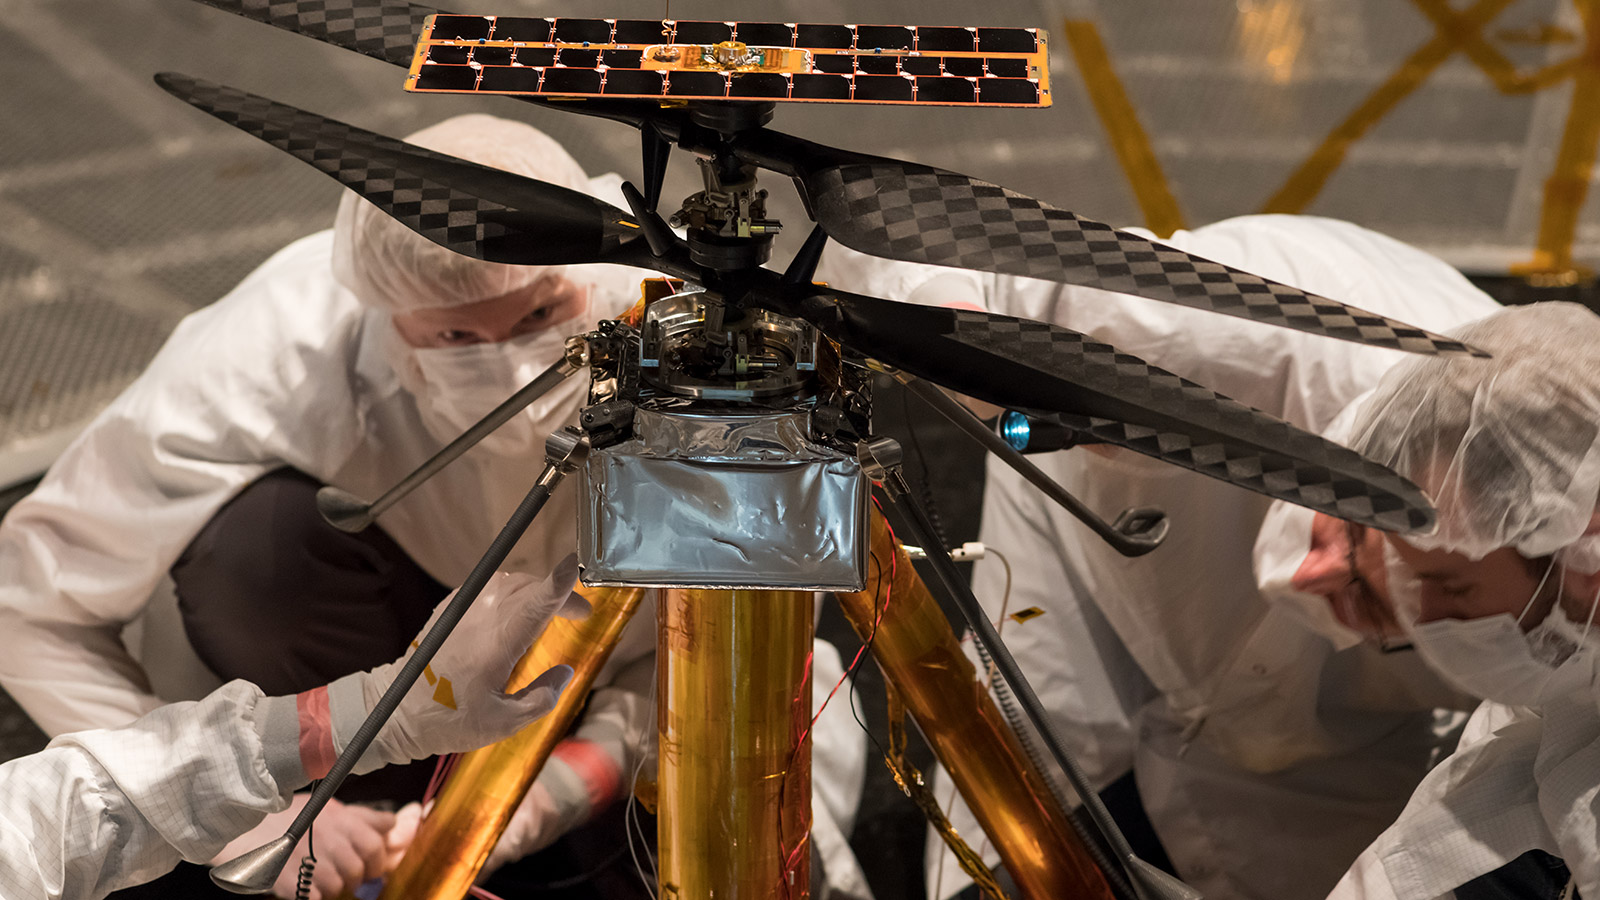 Mars Helicopter Successfully Accomplishes Test Flights